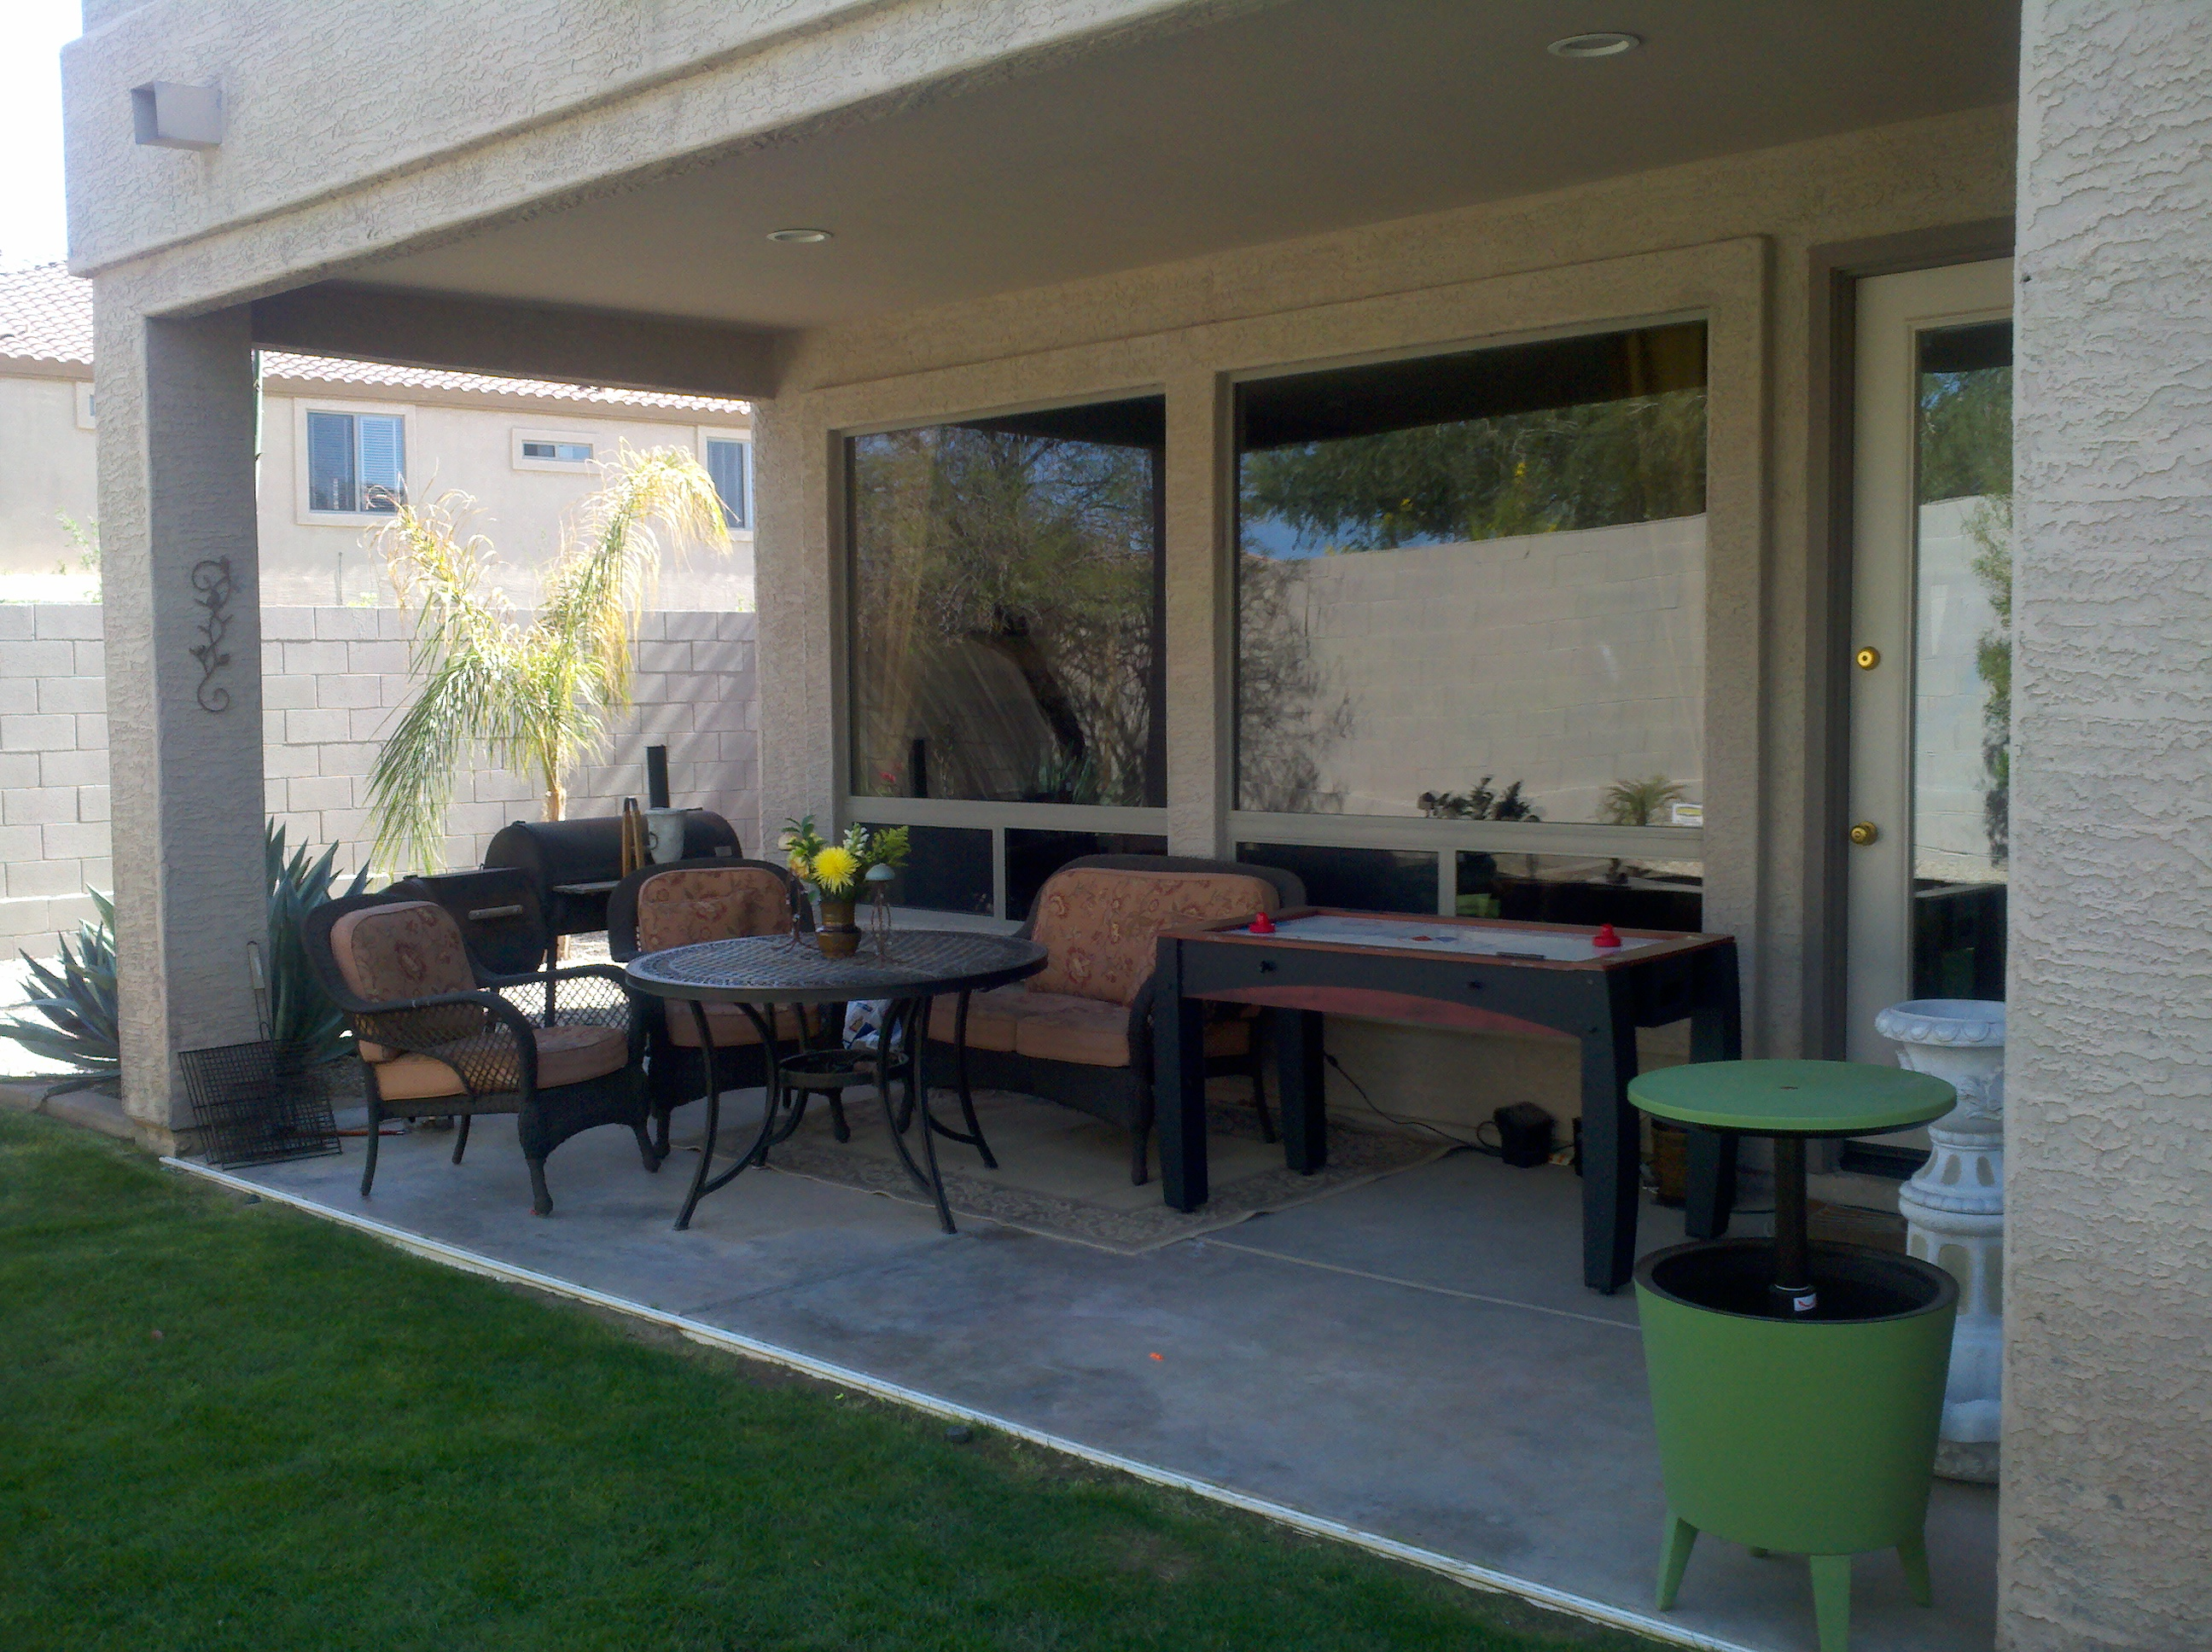 An Easy & Pleasing Patio Makeover - ManagedMoms.com on Outdoor Patio Makeover id=24676